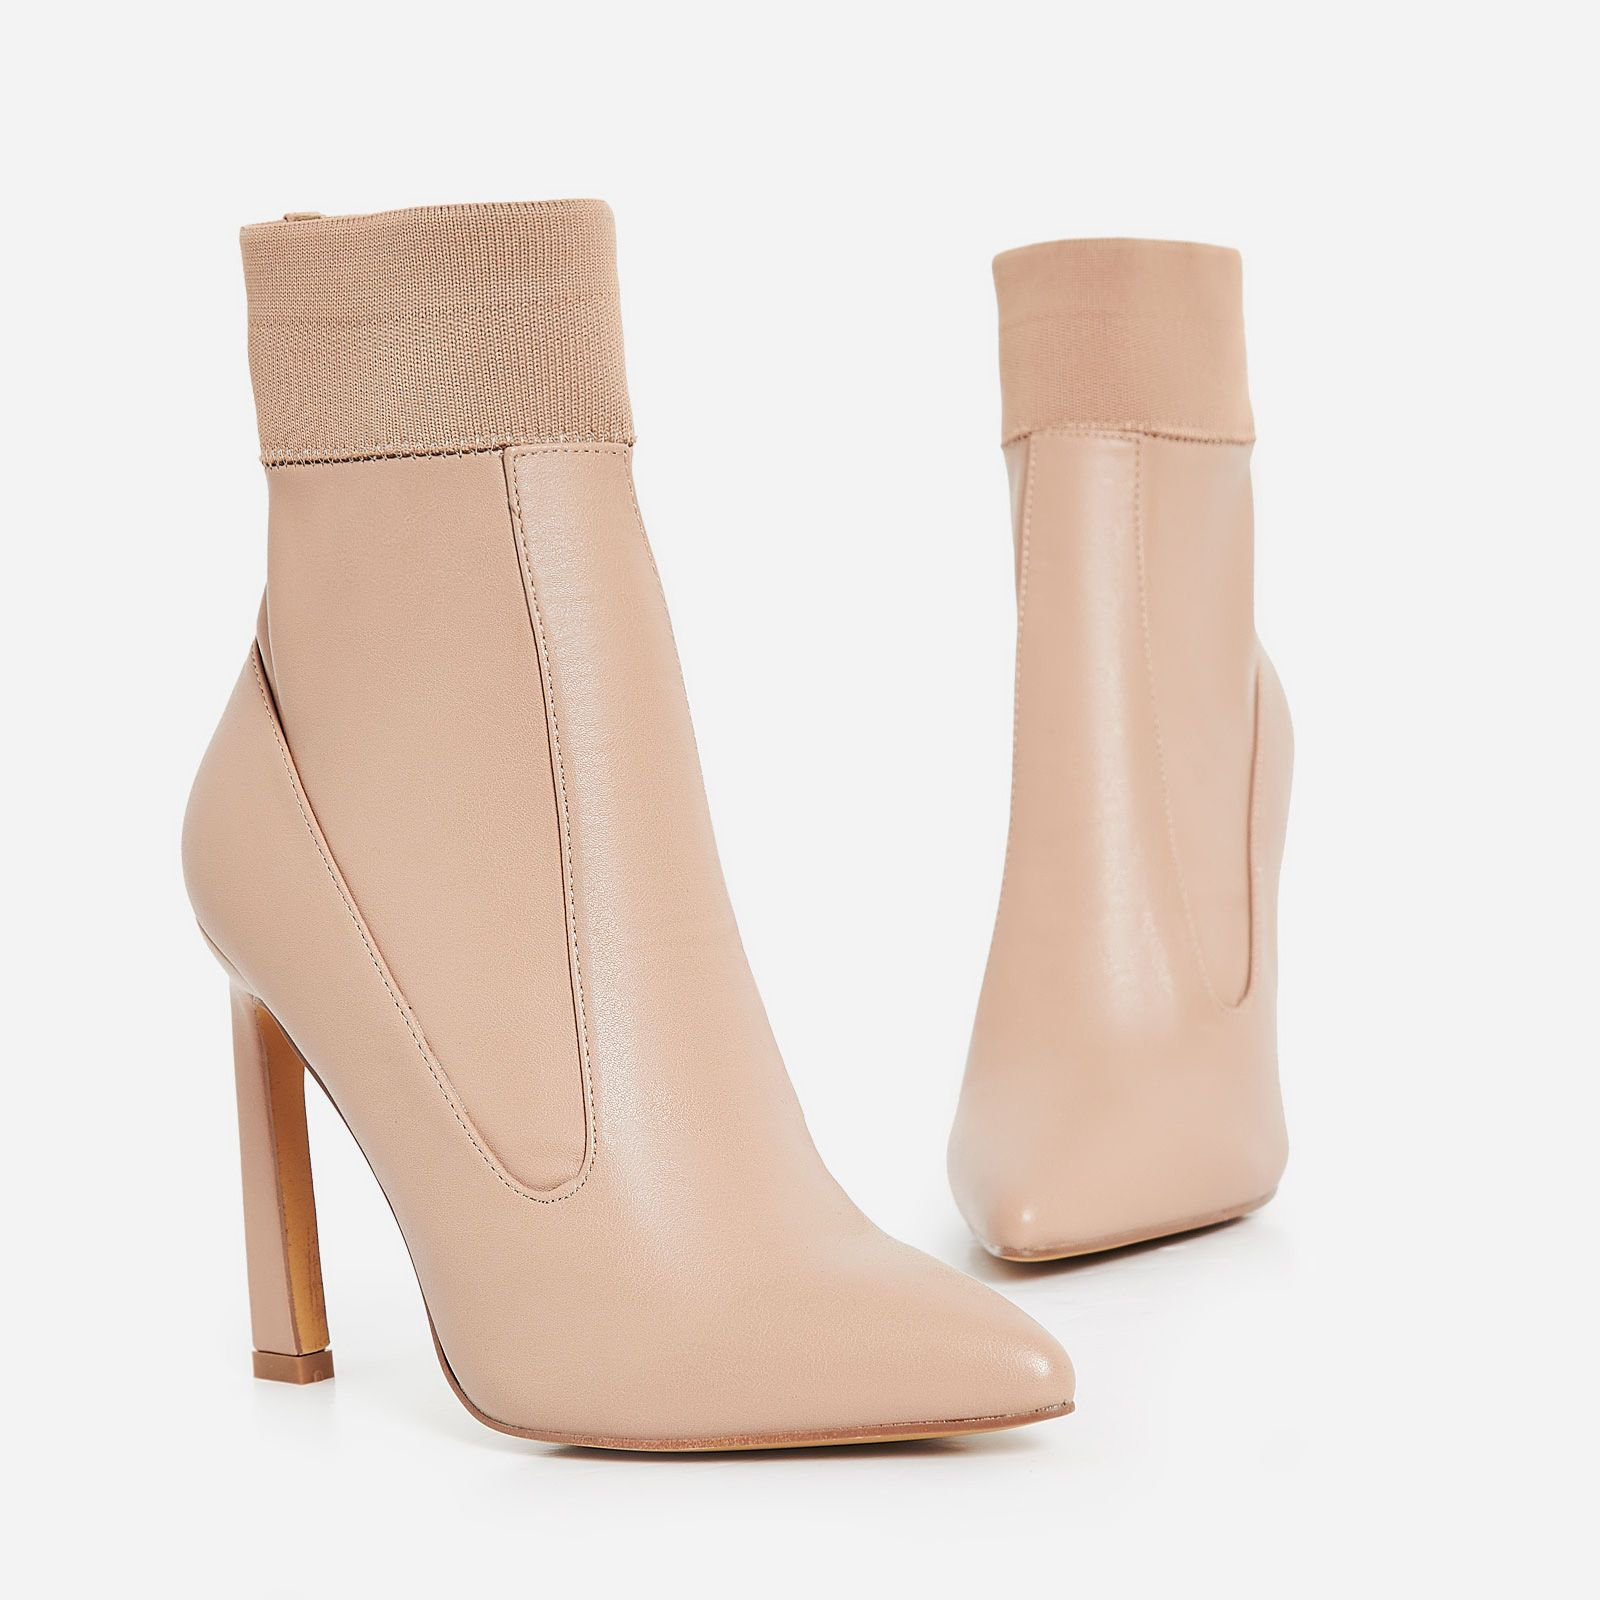 Elaina Flared Stiletto Heel Ankle Sock Boot In Nude Faux Leather | EGO